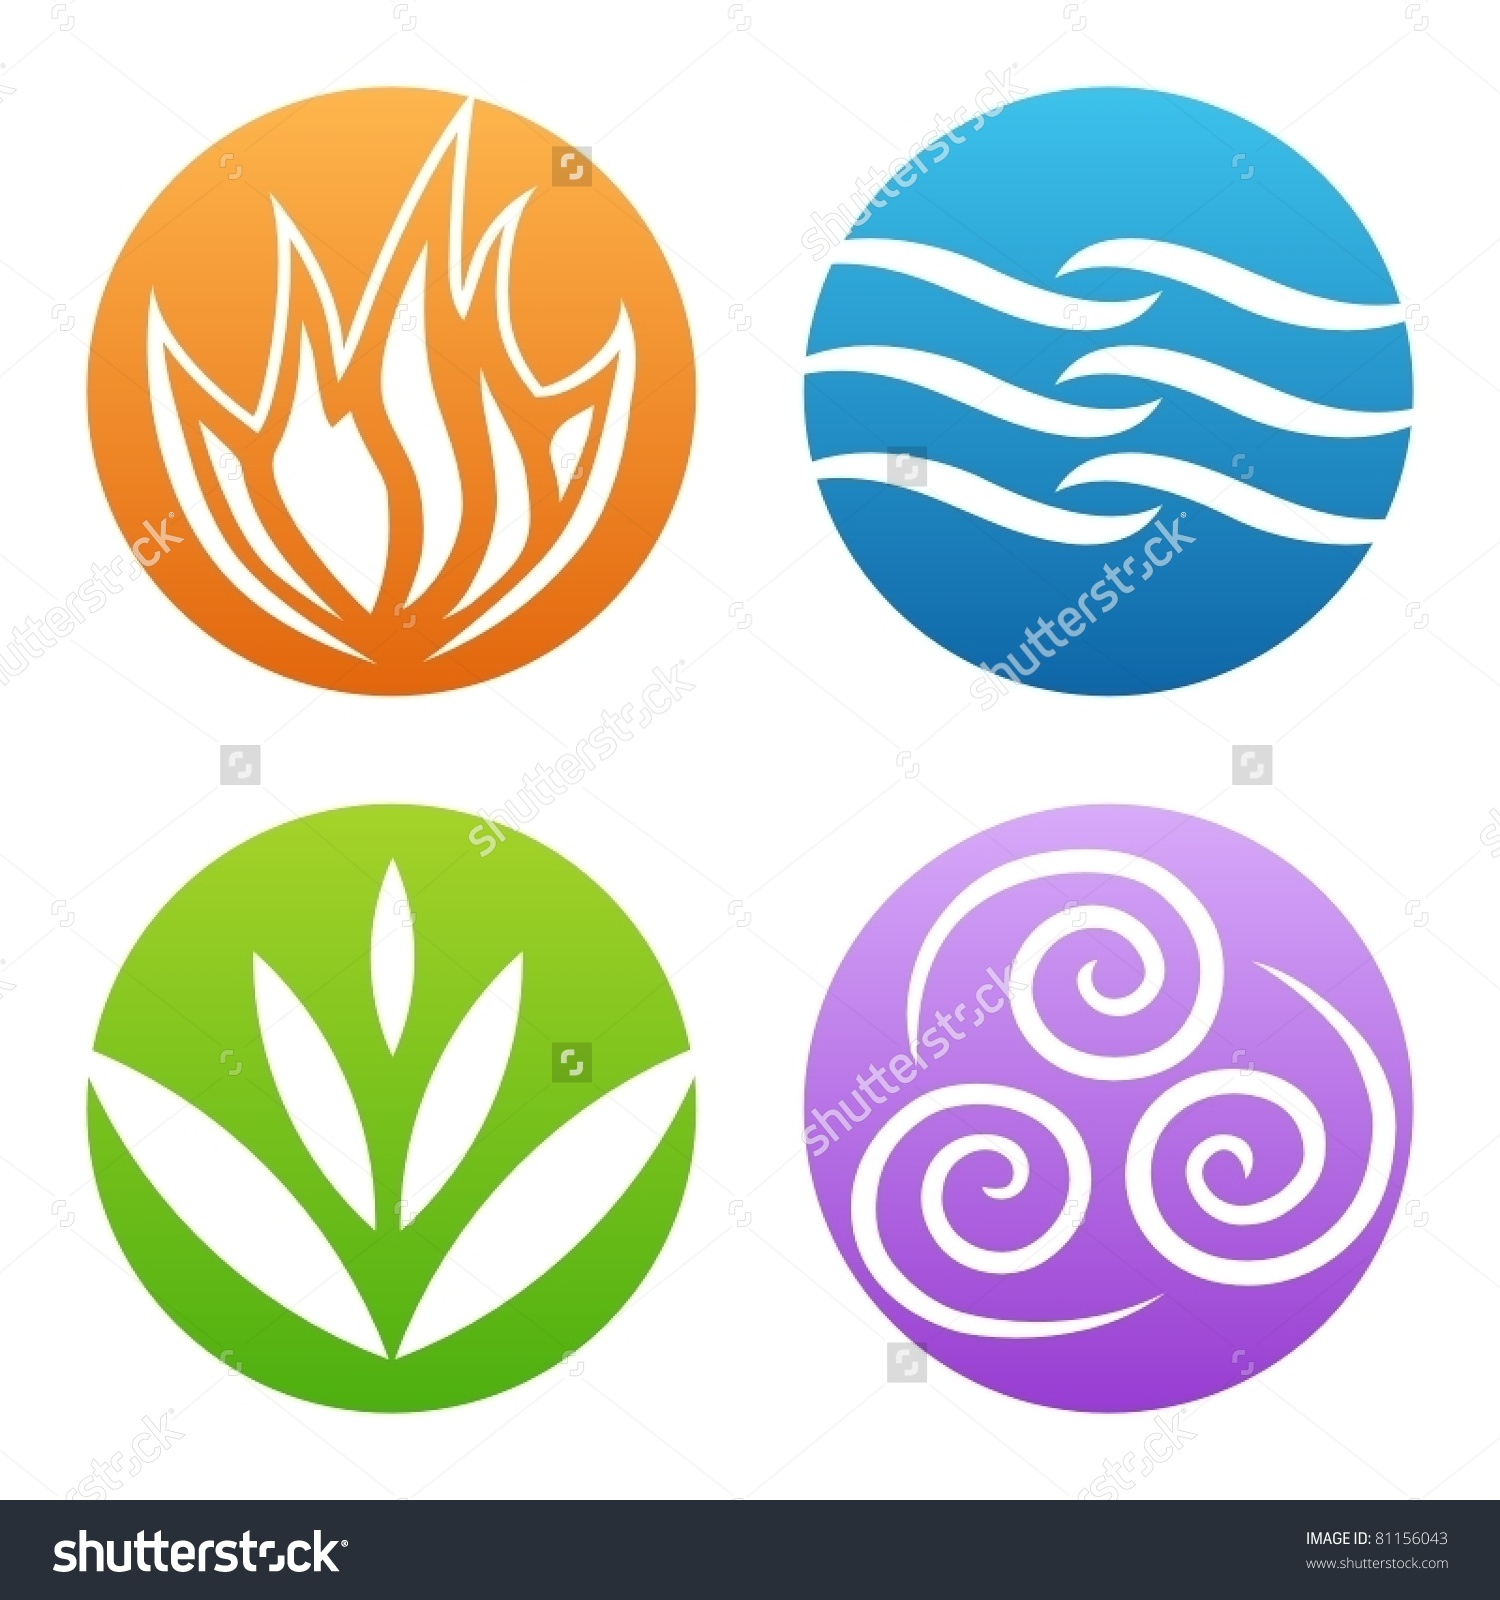 Elements clipart chemical formula Stock Earth Vector Fire Fire